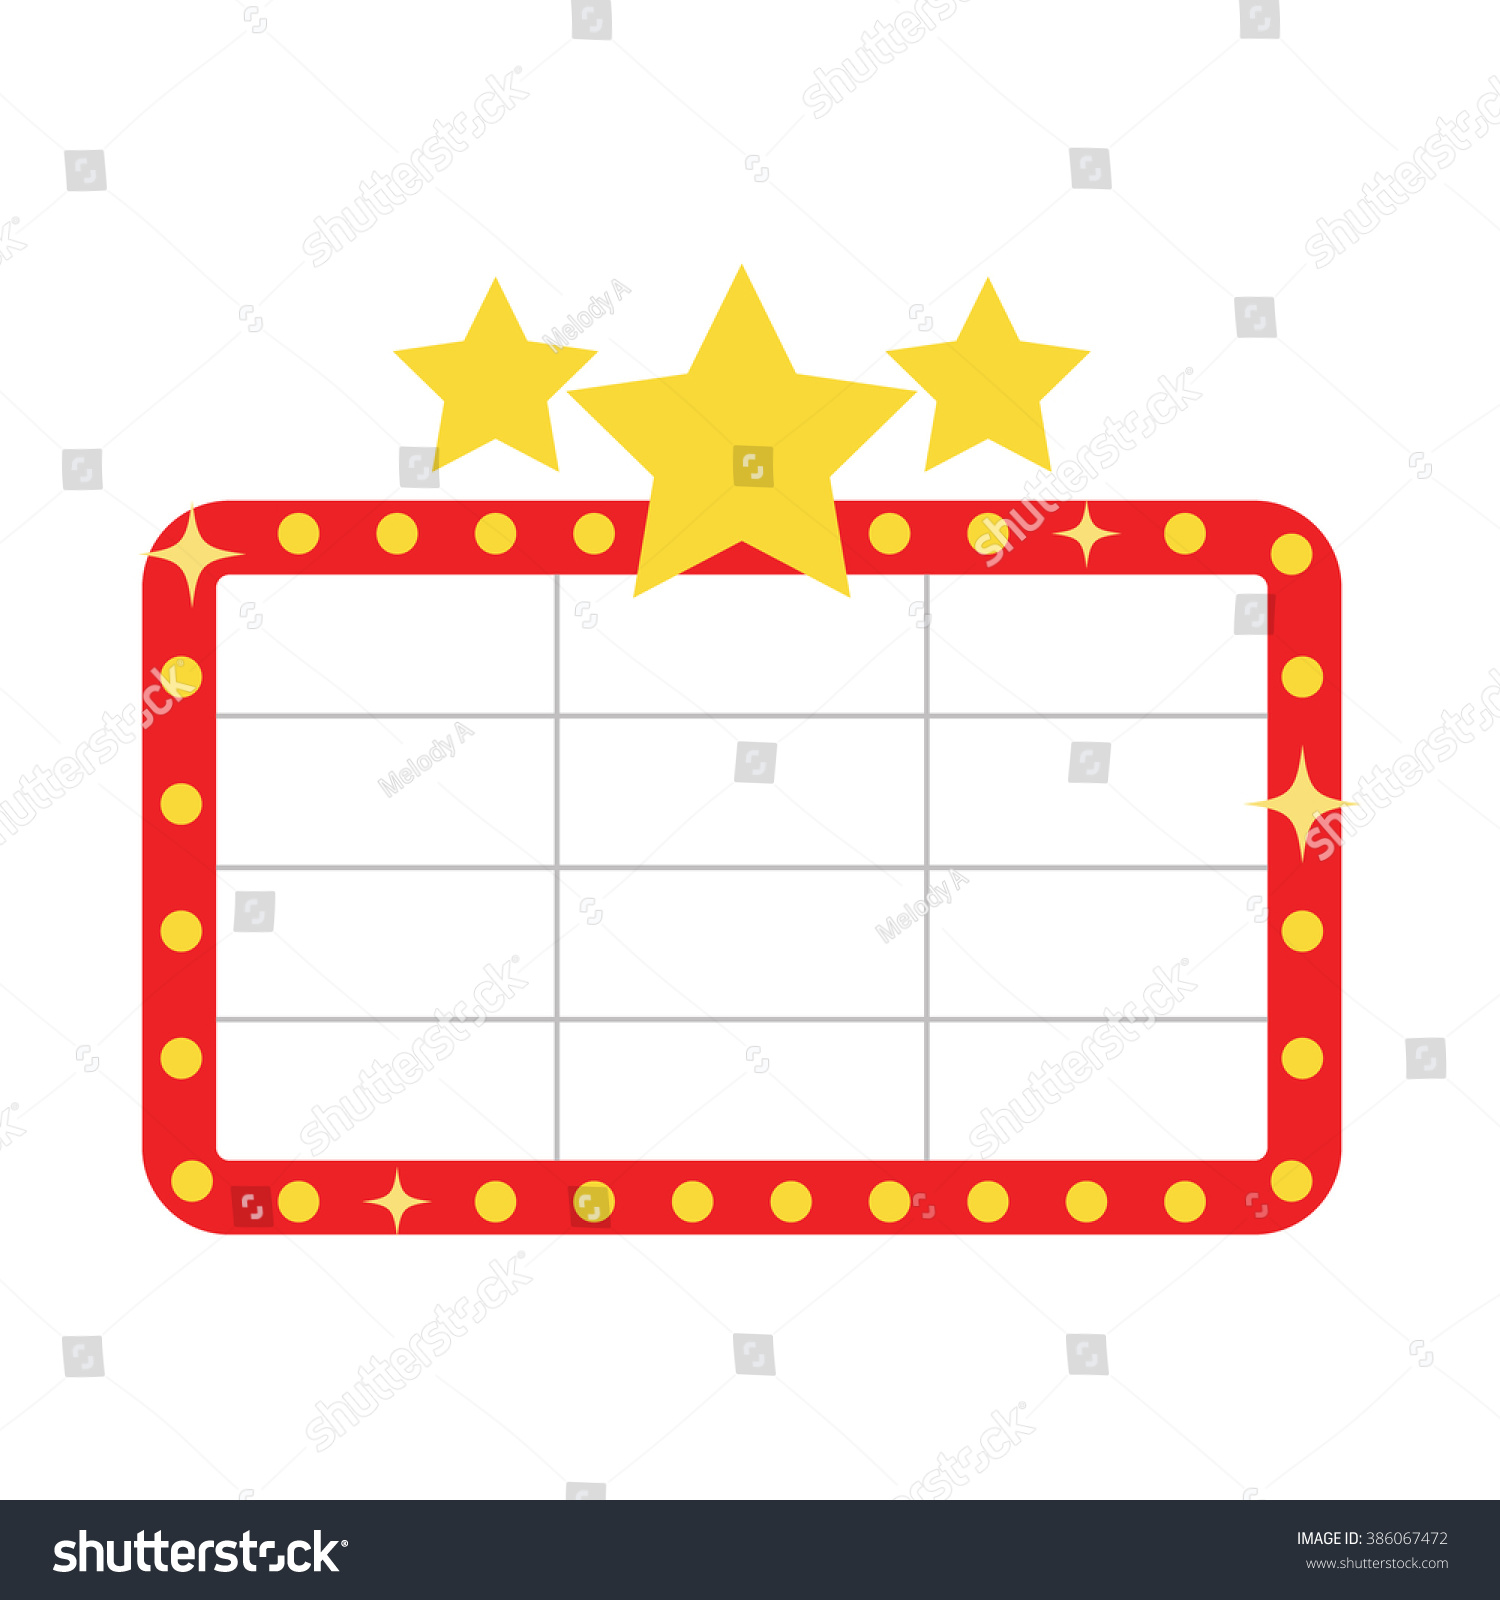 movie marquee cinema sign movie line stock vector hd royalty free rh shutterstock com movie marquee clipart black and white movie theatre marquee clipart